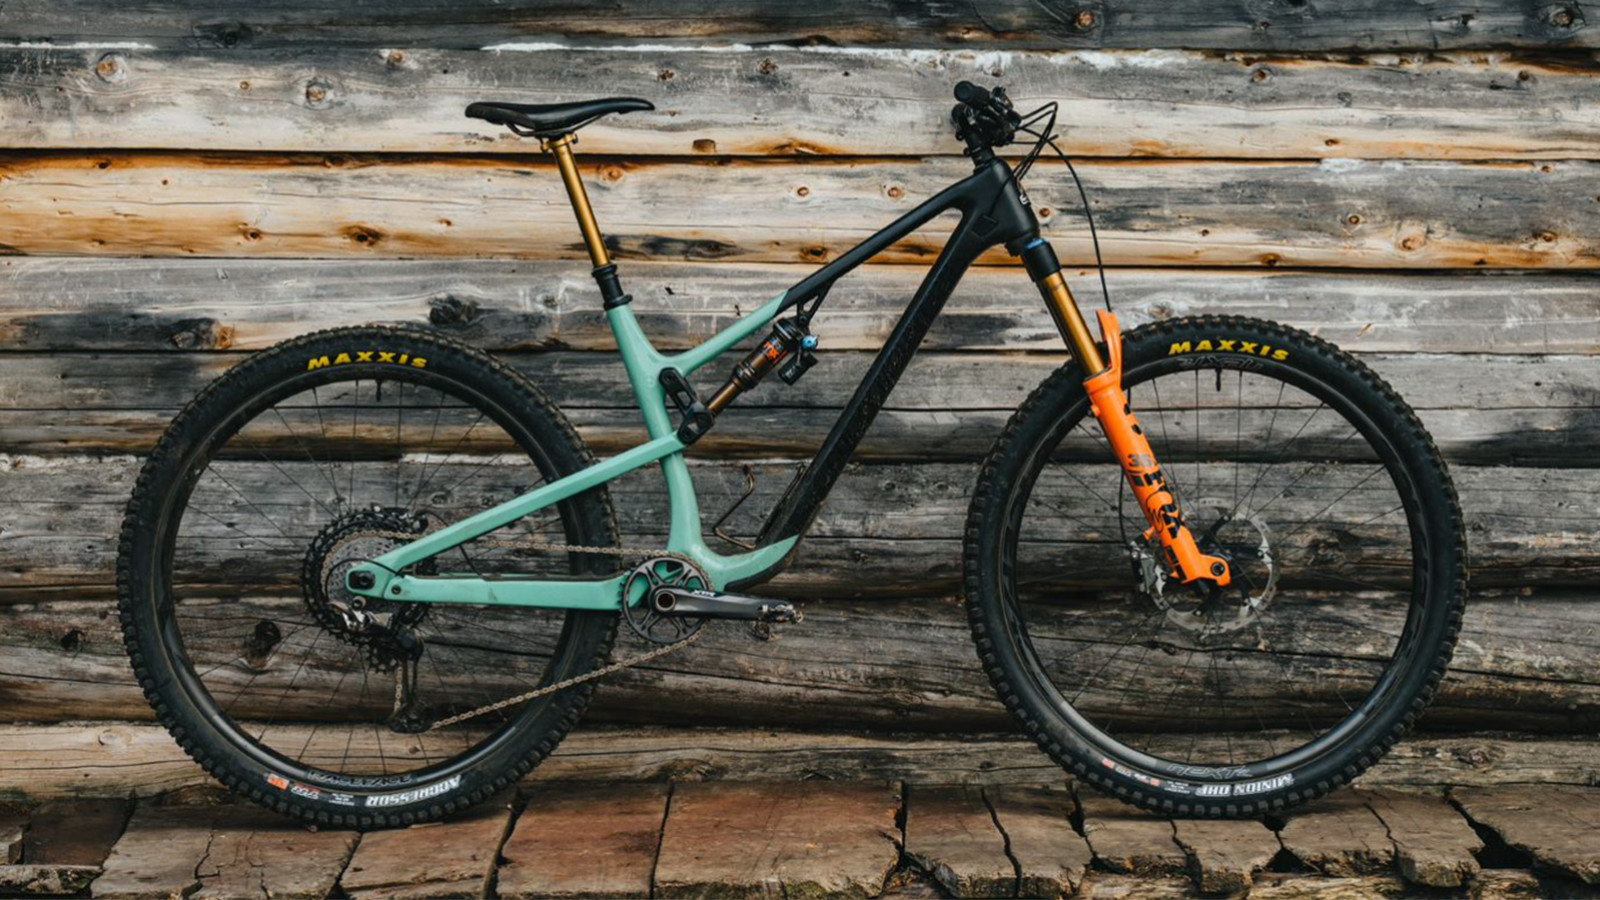 Trail Focused and Ready to Rip - Rocky Mountain's New Instinct